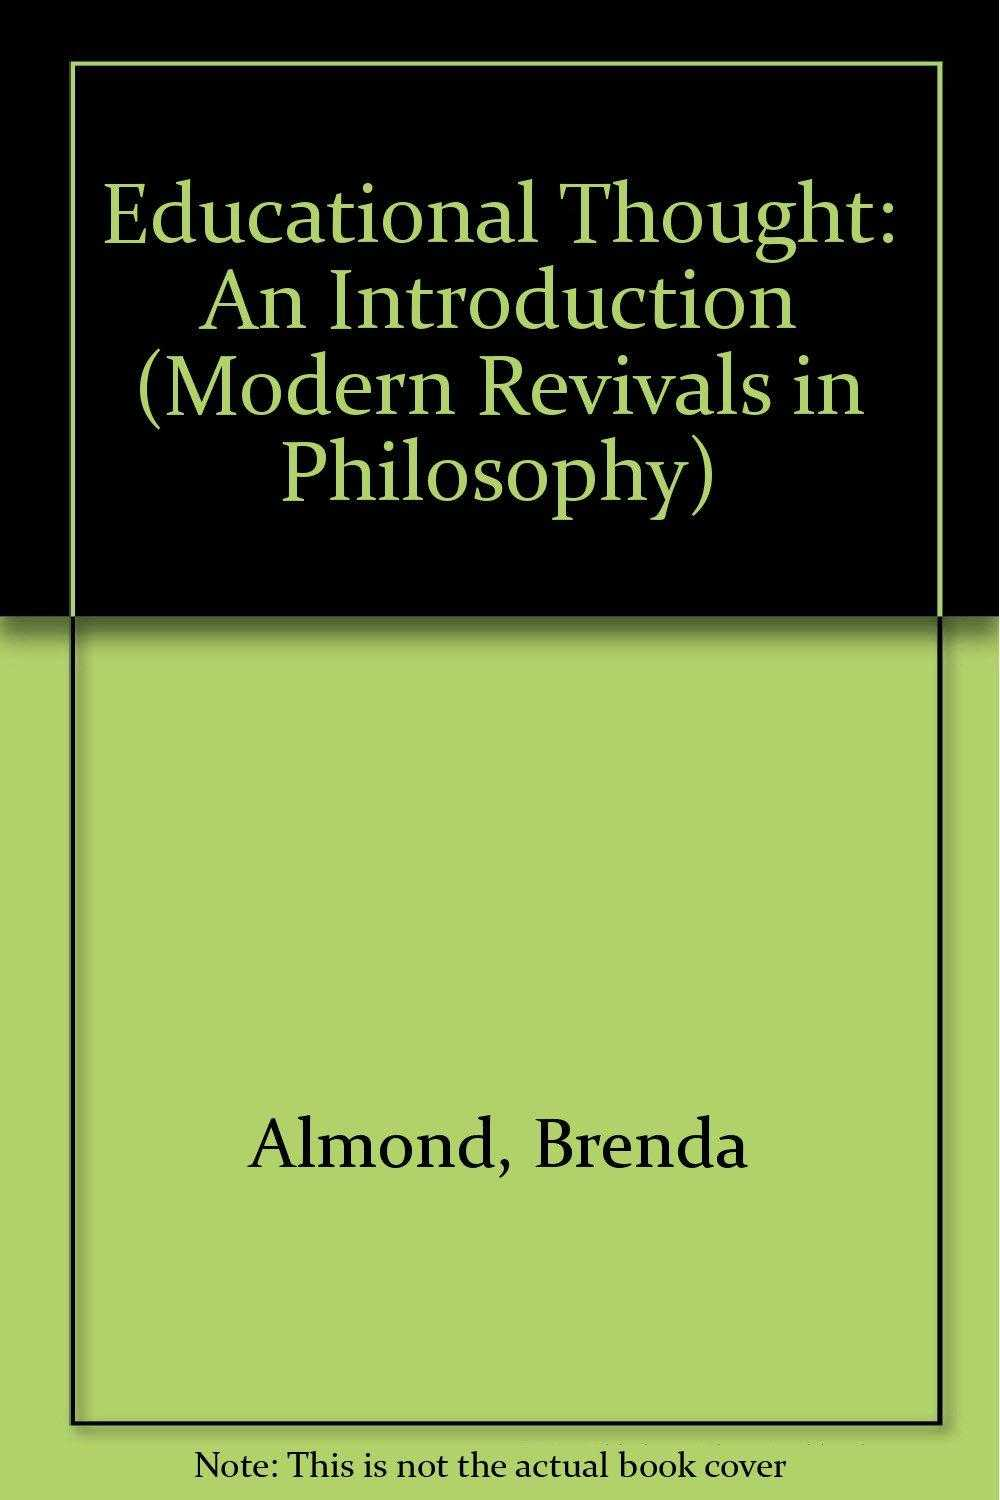 Educational Thought: An Introduction (Modern Revivals in Philosophy), Almond, Brenda